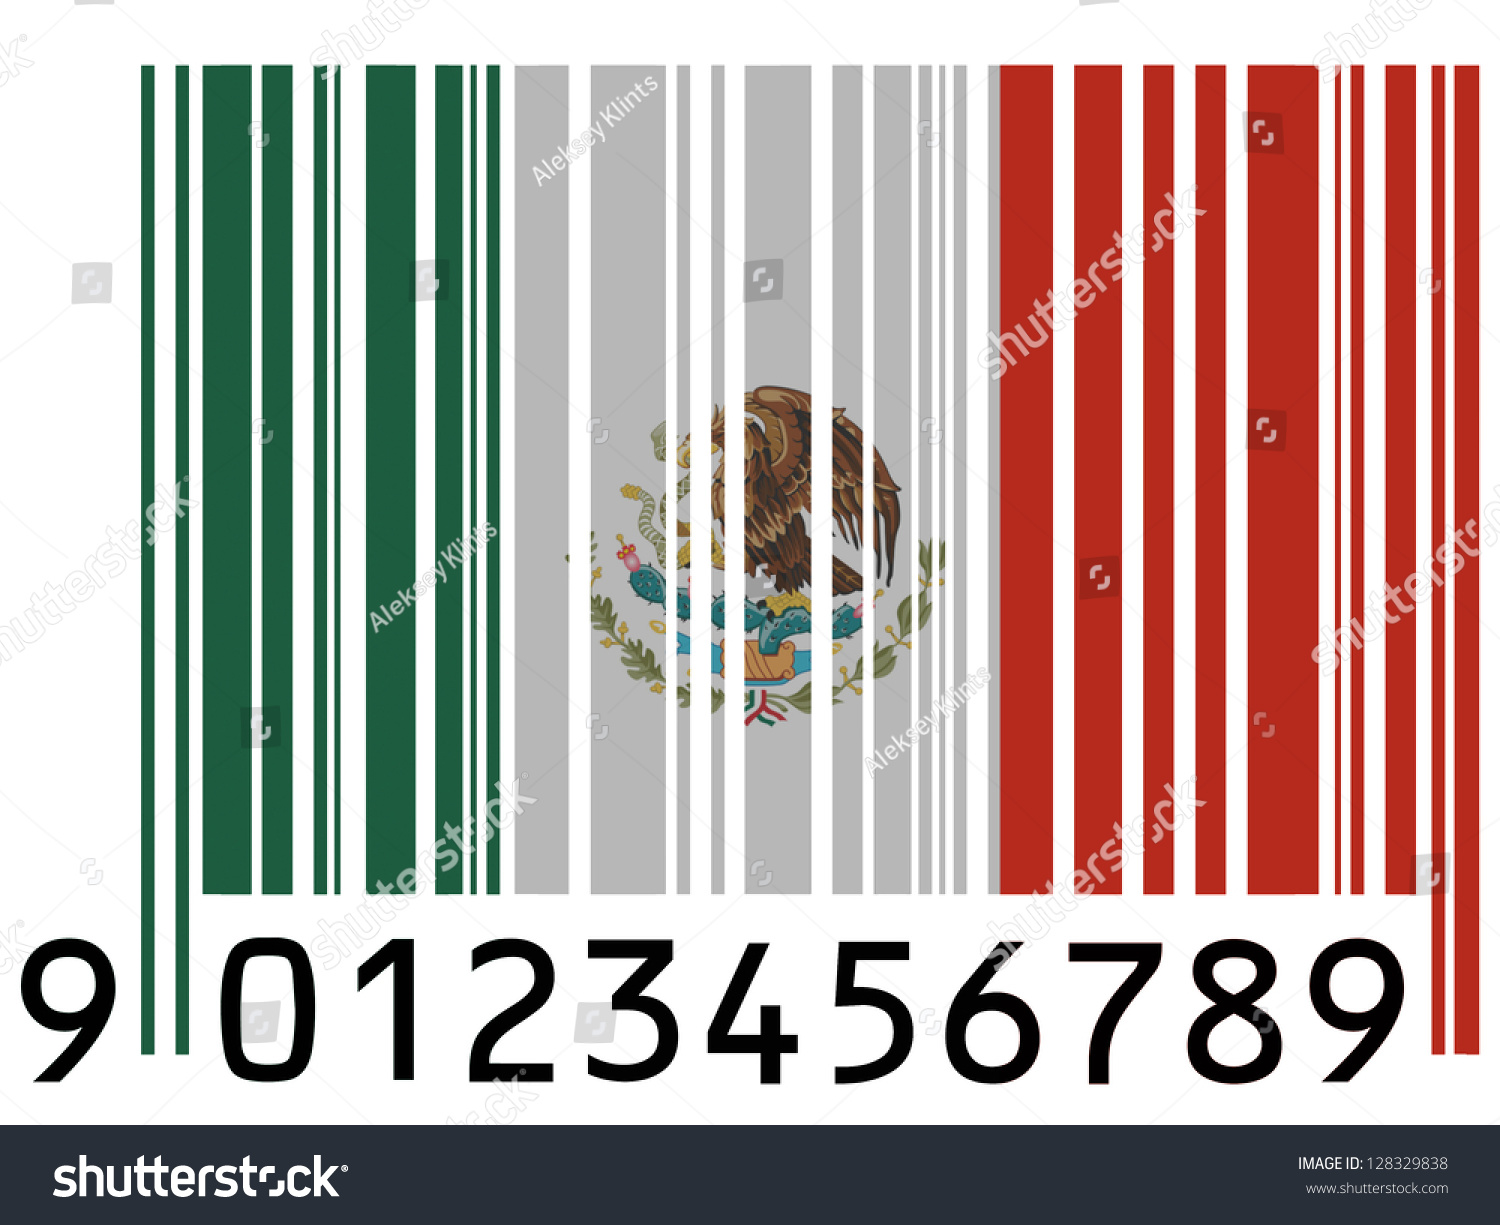 mexico mexican flag painted on barcode stock illustration